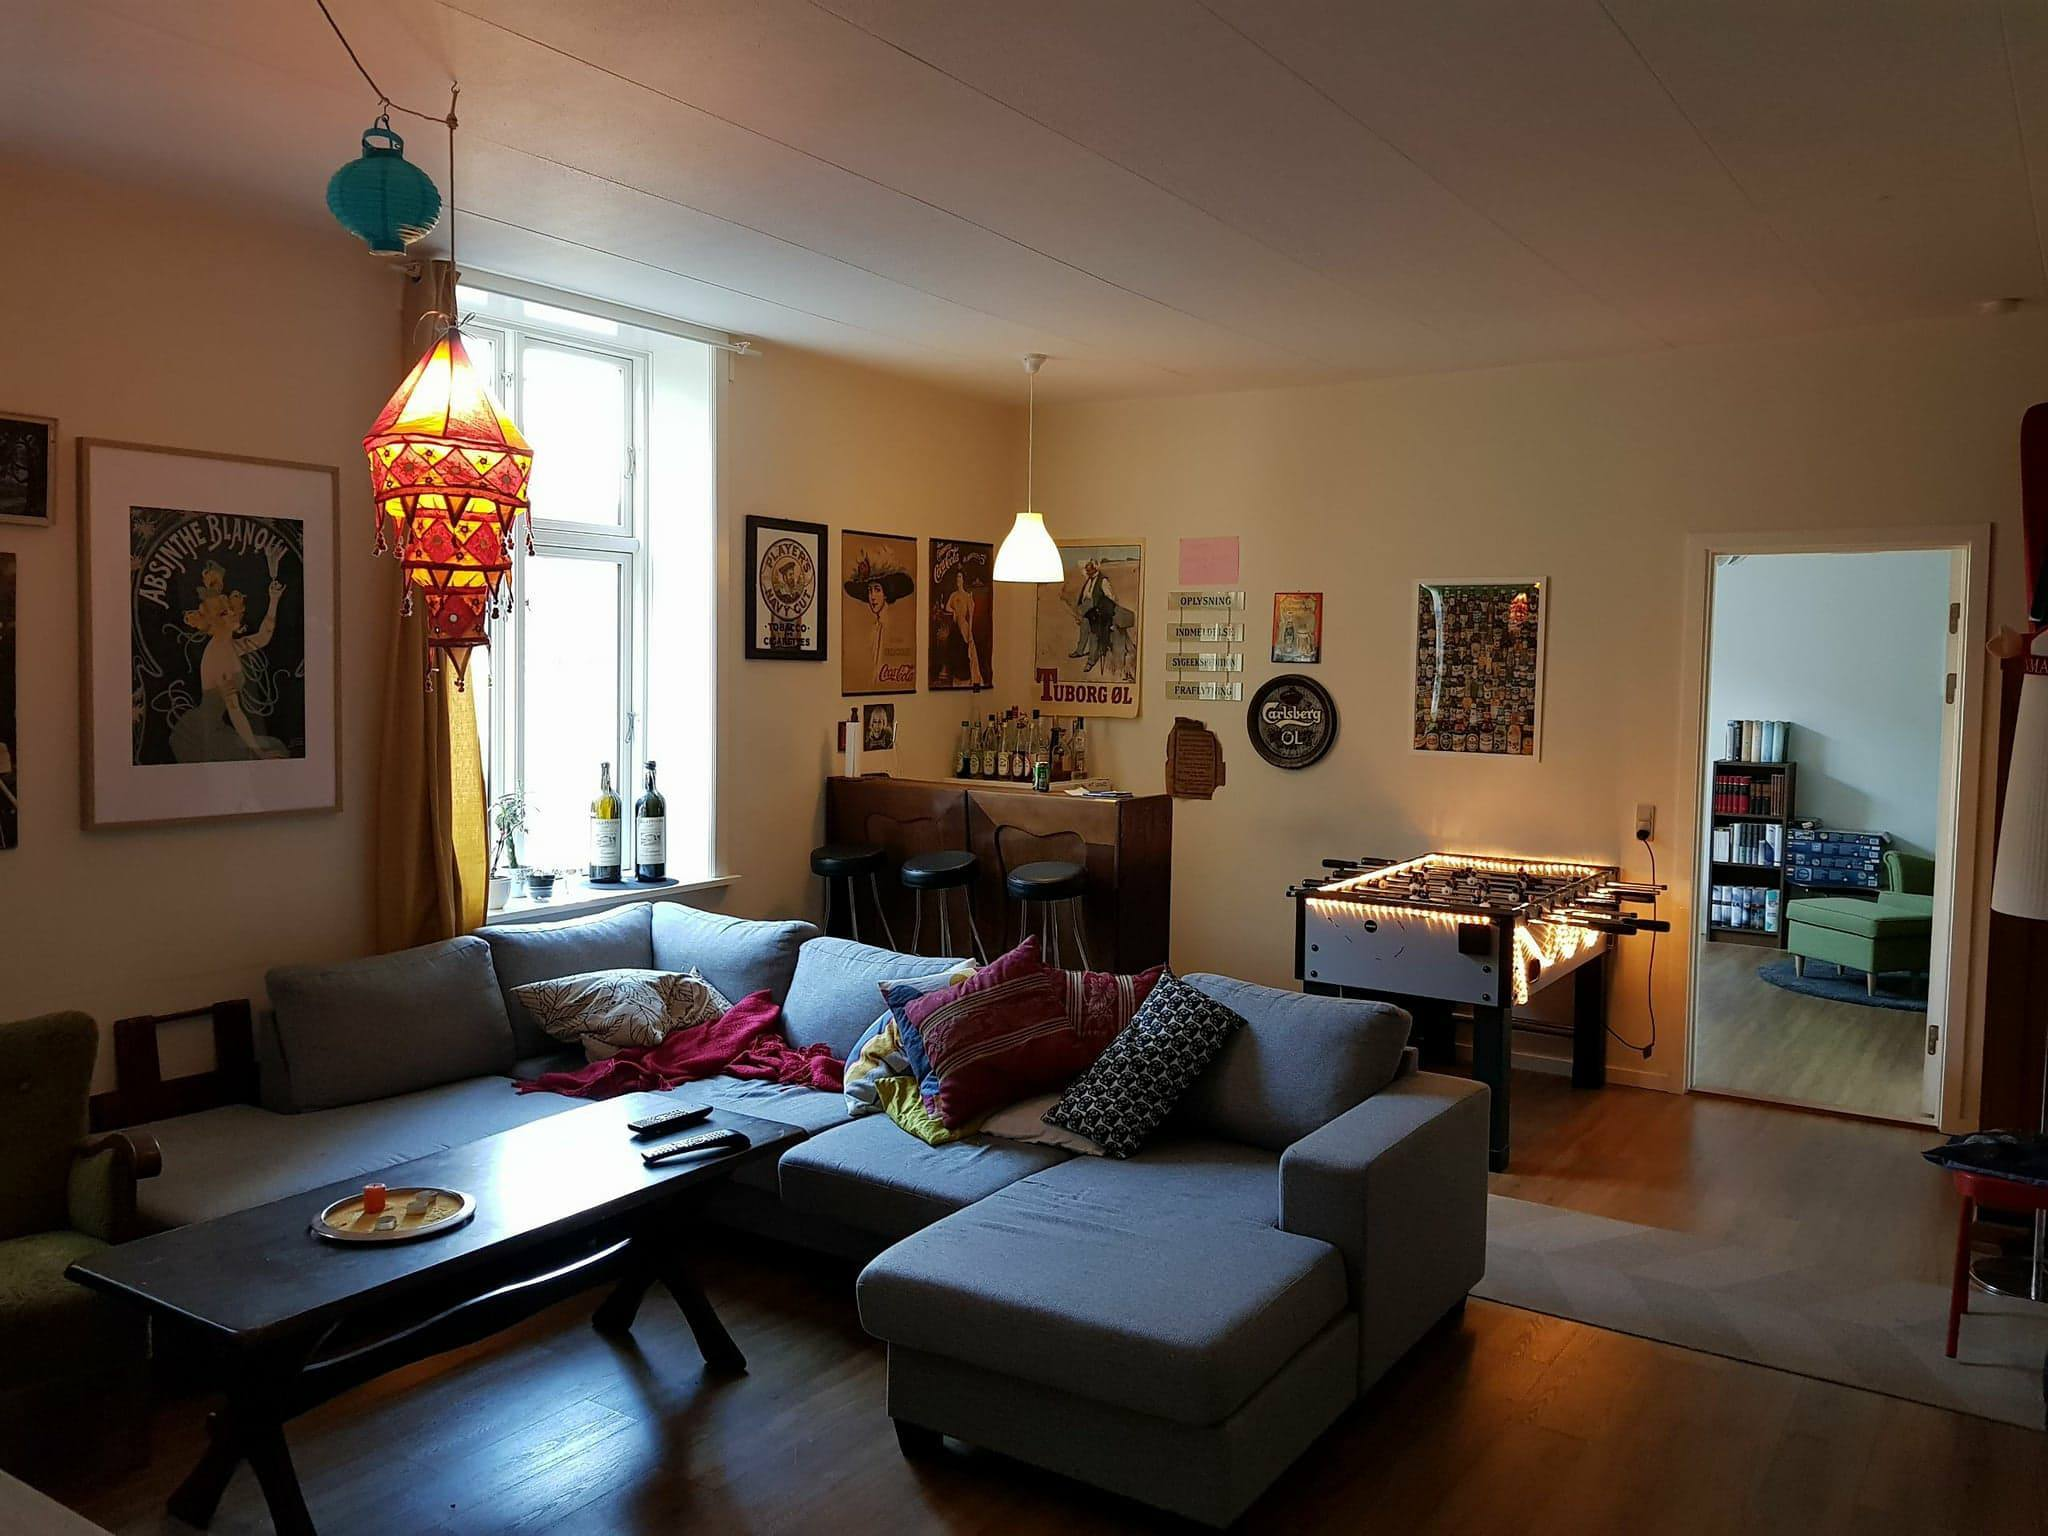 Cozy collective in the middle of Aalborg looking for a male resident.